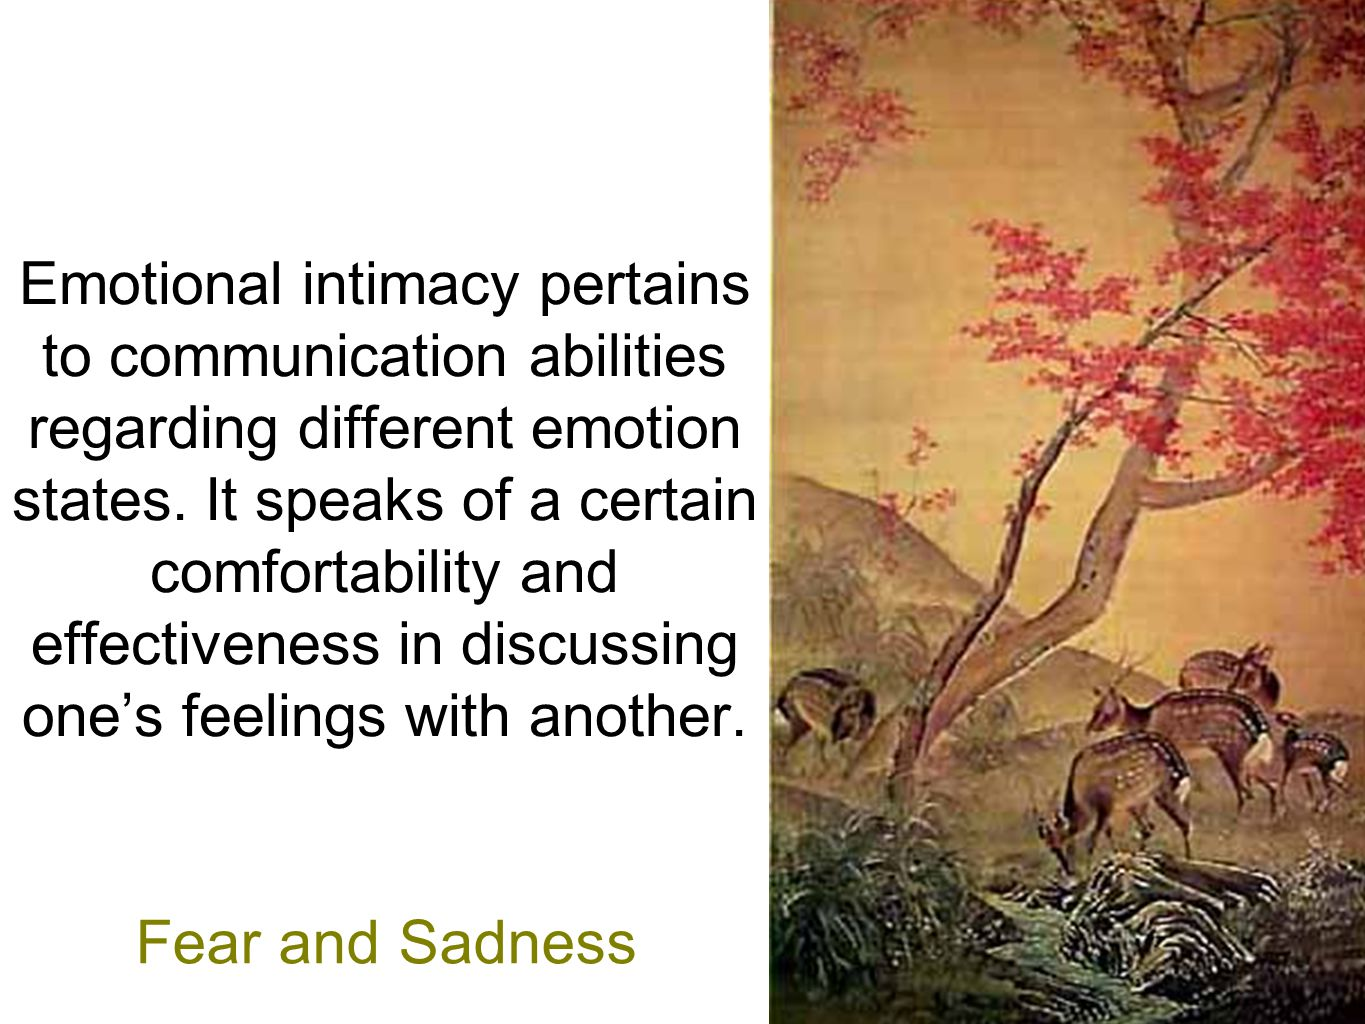 Emotional intimacy pertains to communication abilities regarding different emotion states.